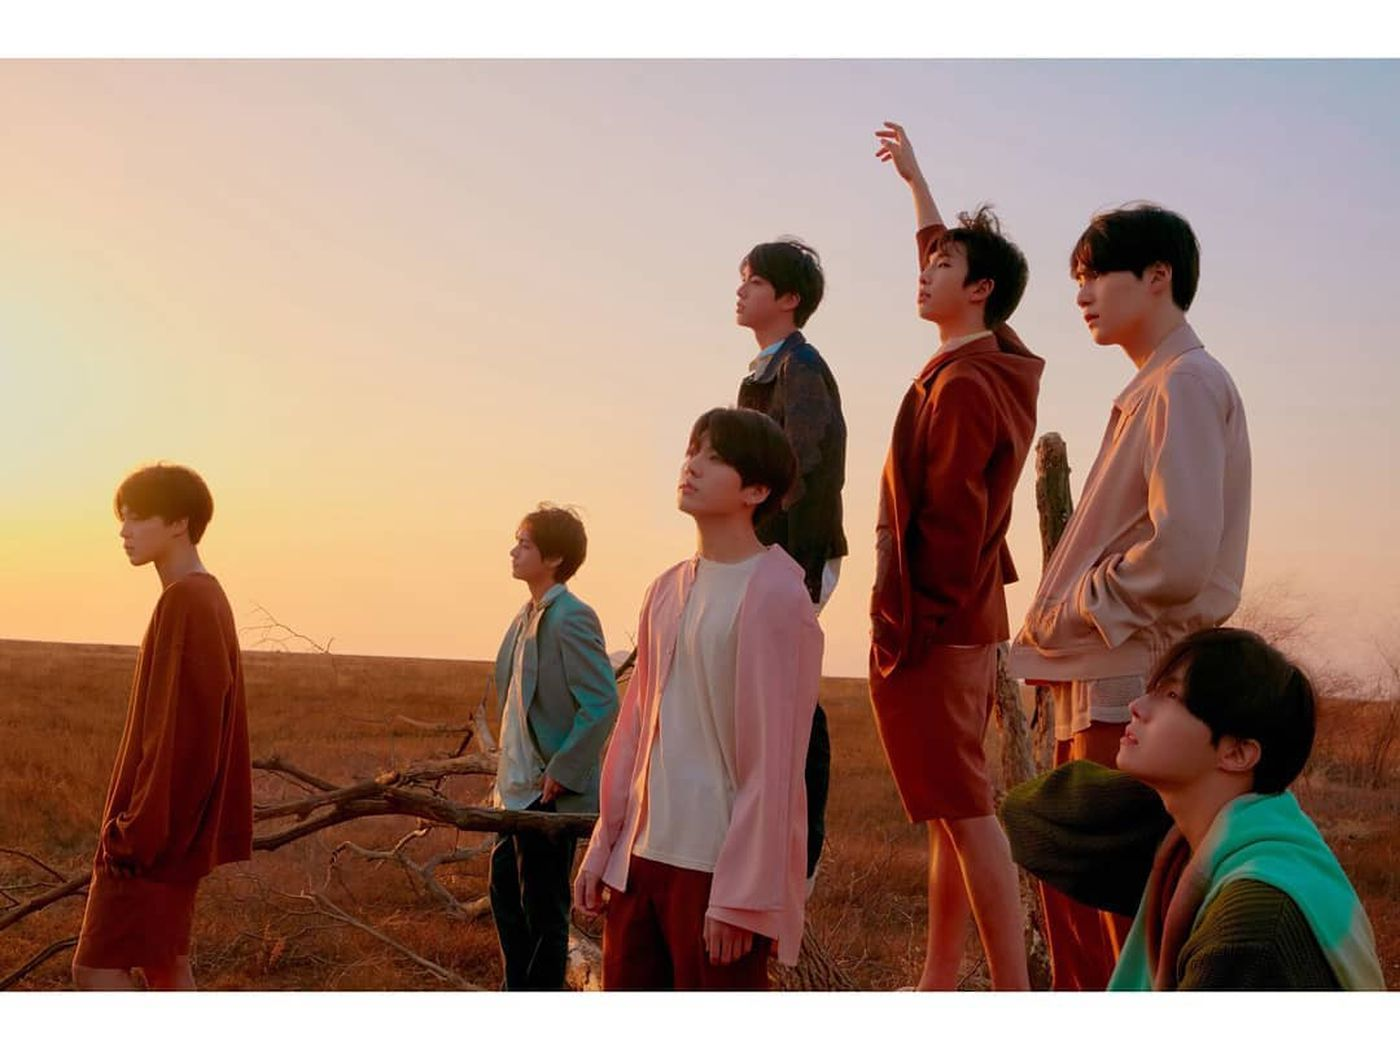 BTS, the band that changed K-pop, explained - Vox